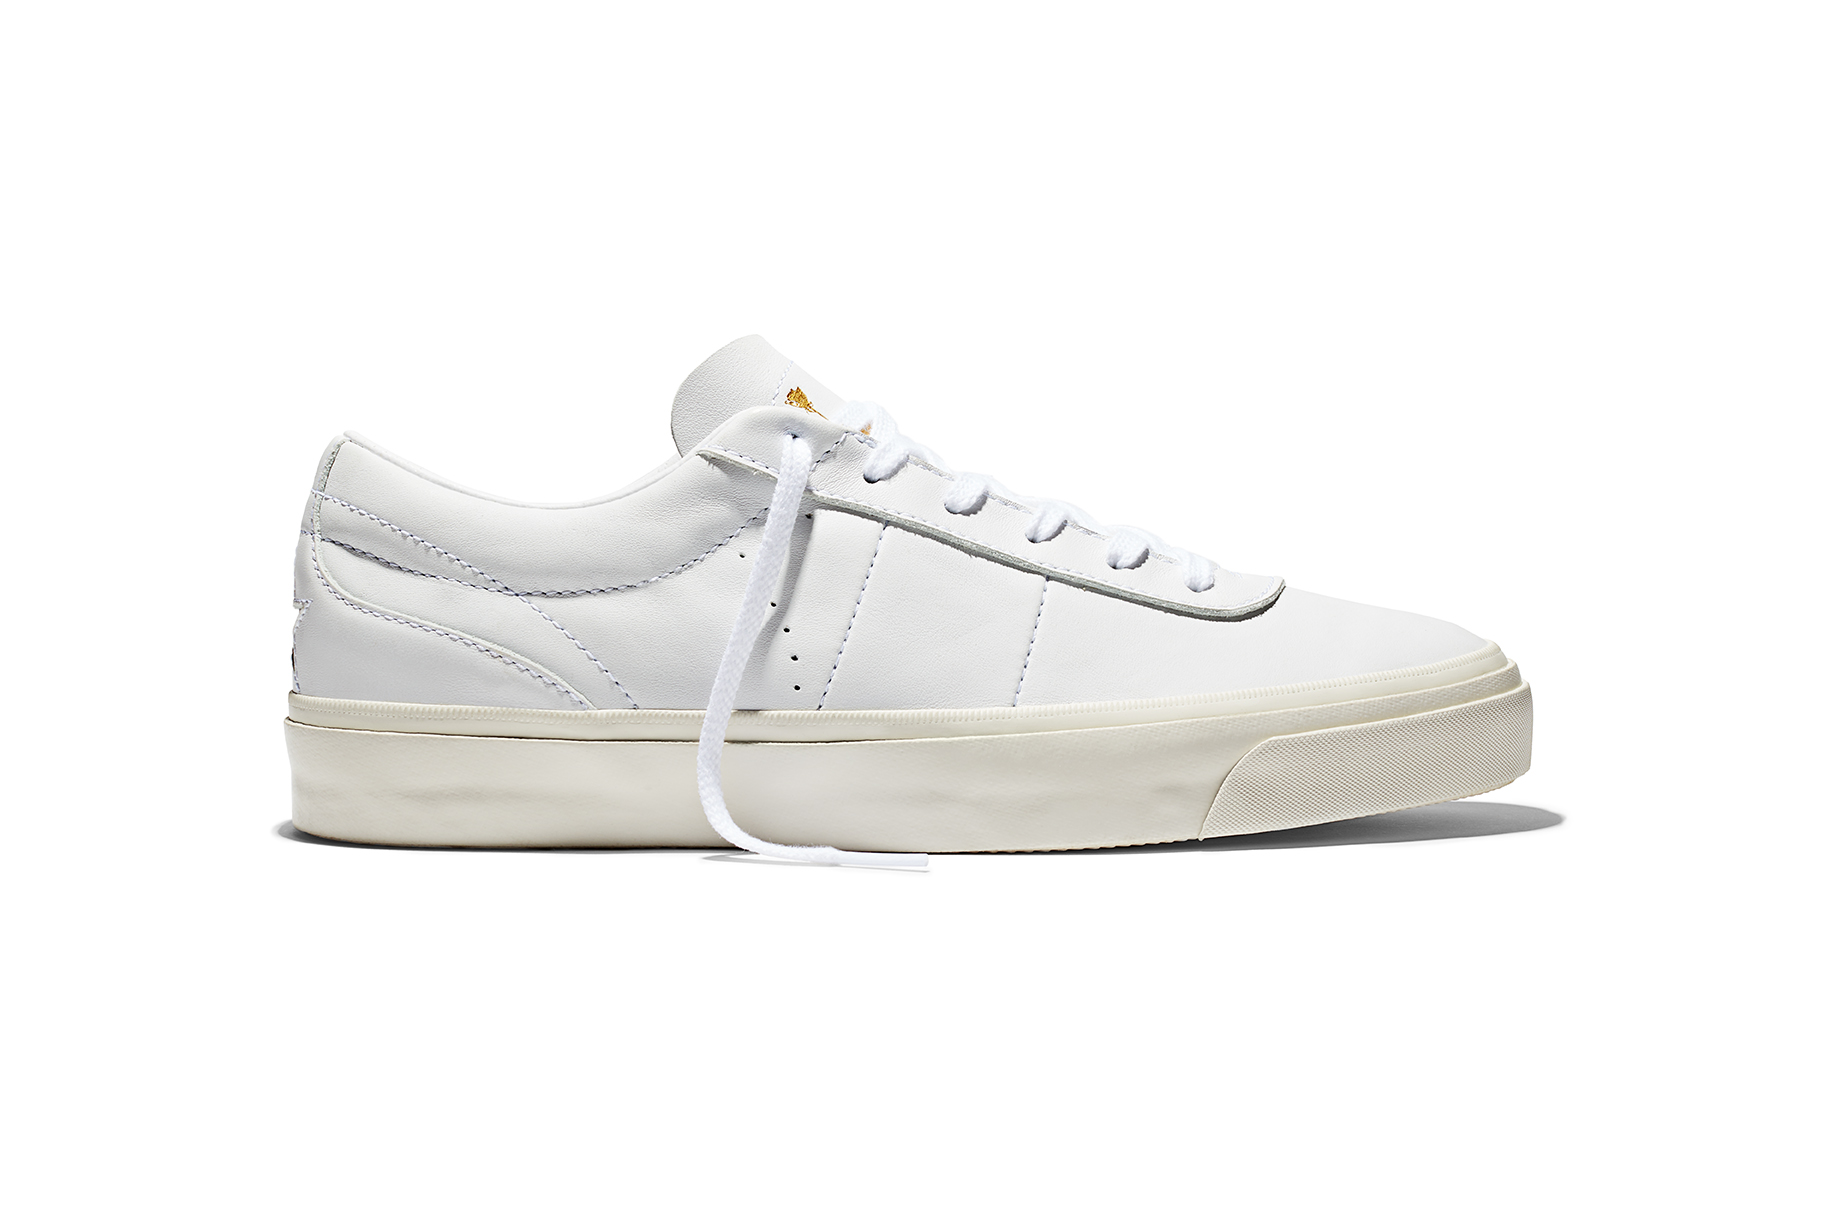 SS17_One_Star_Pro_White_LATERAL_155626C.jpg